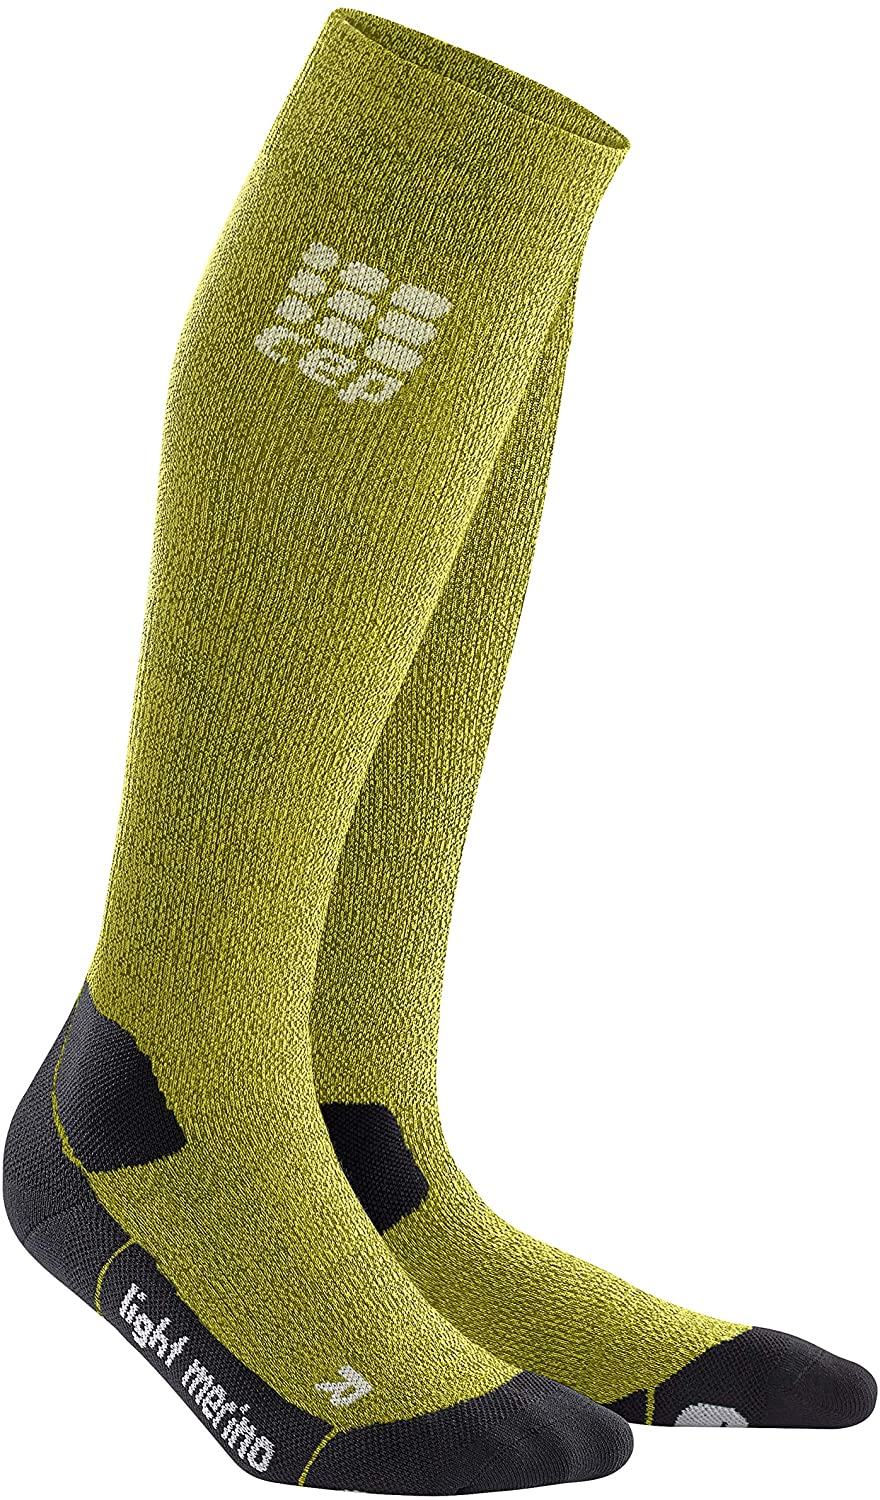 CEP Women's Long Compression Light Merino Wool Socks for Hiking